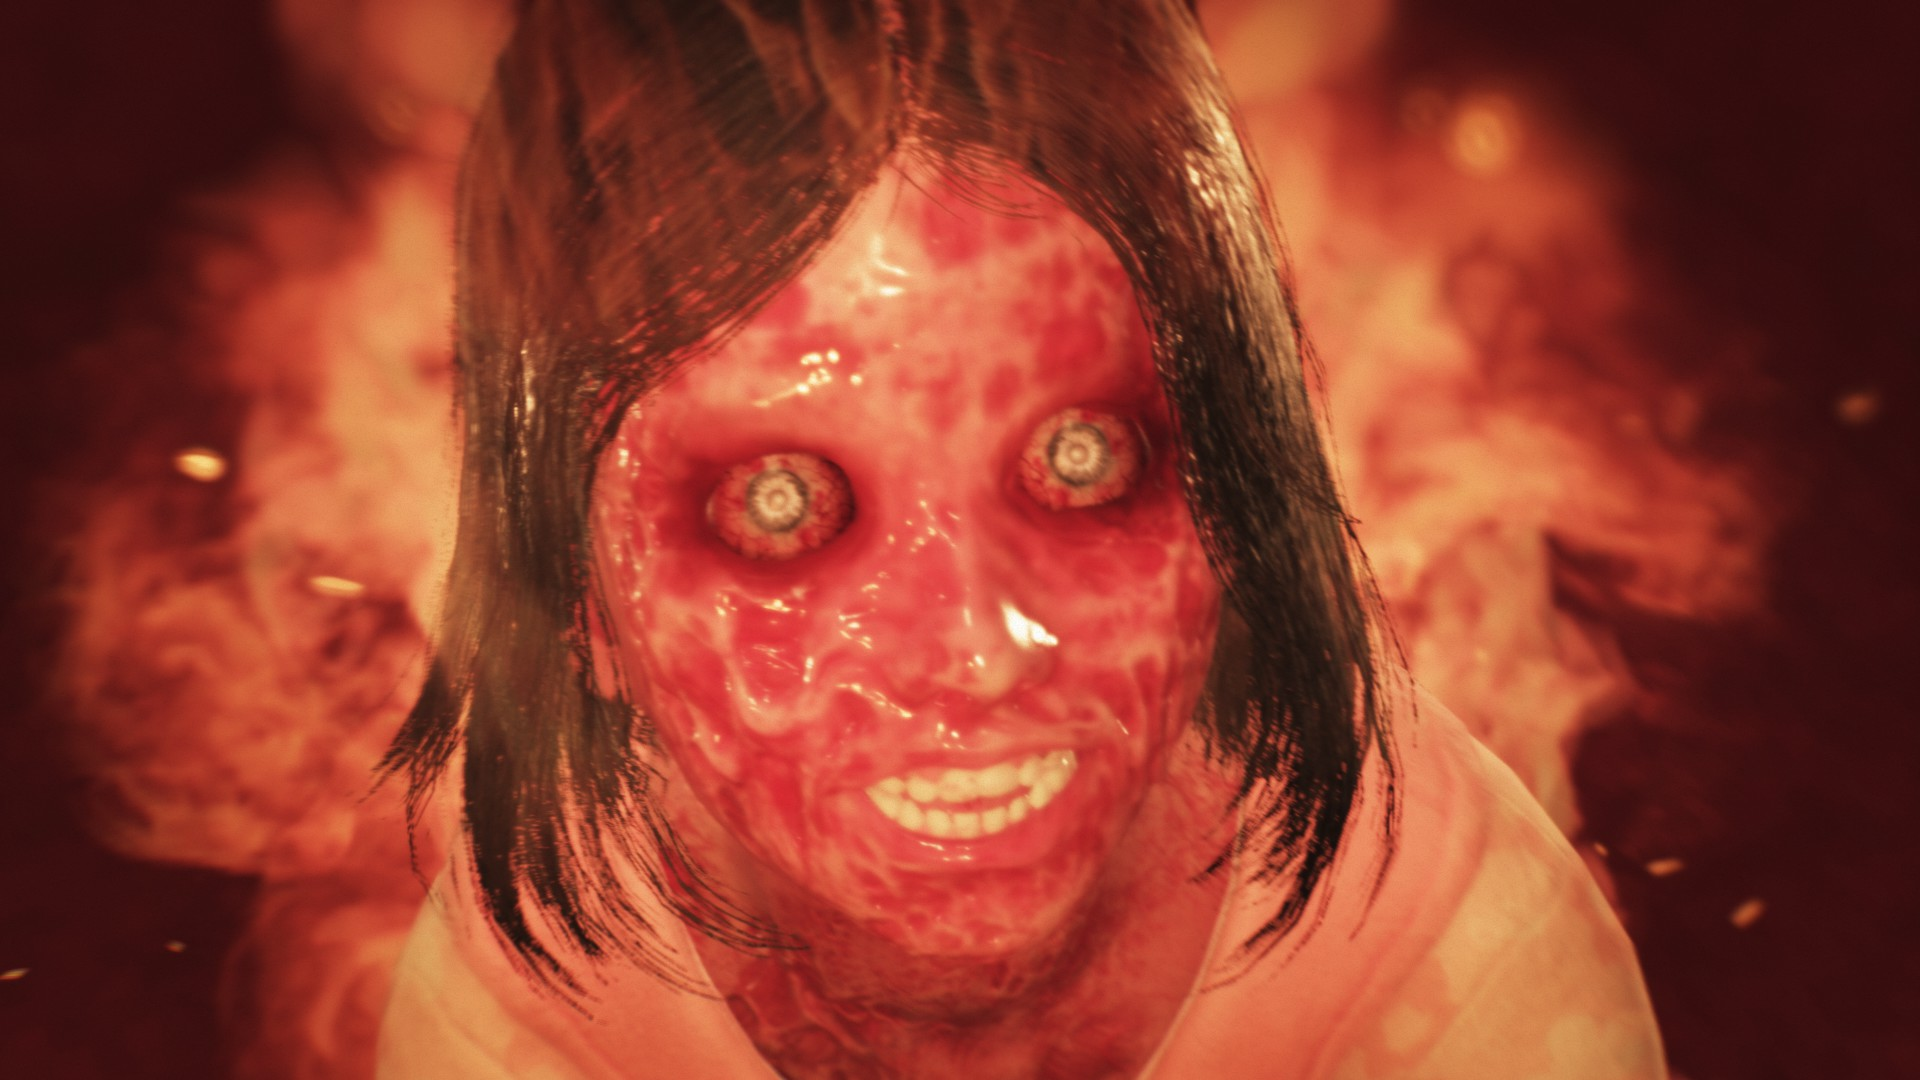 20181124220040_1.jpg - Evil Within 2, the